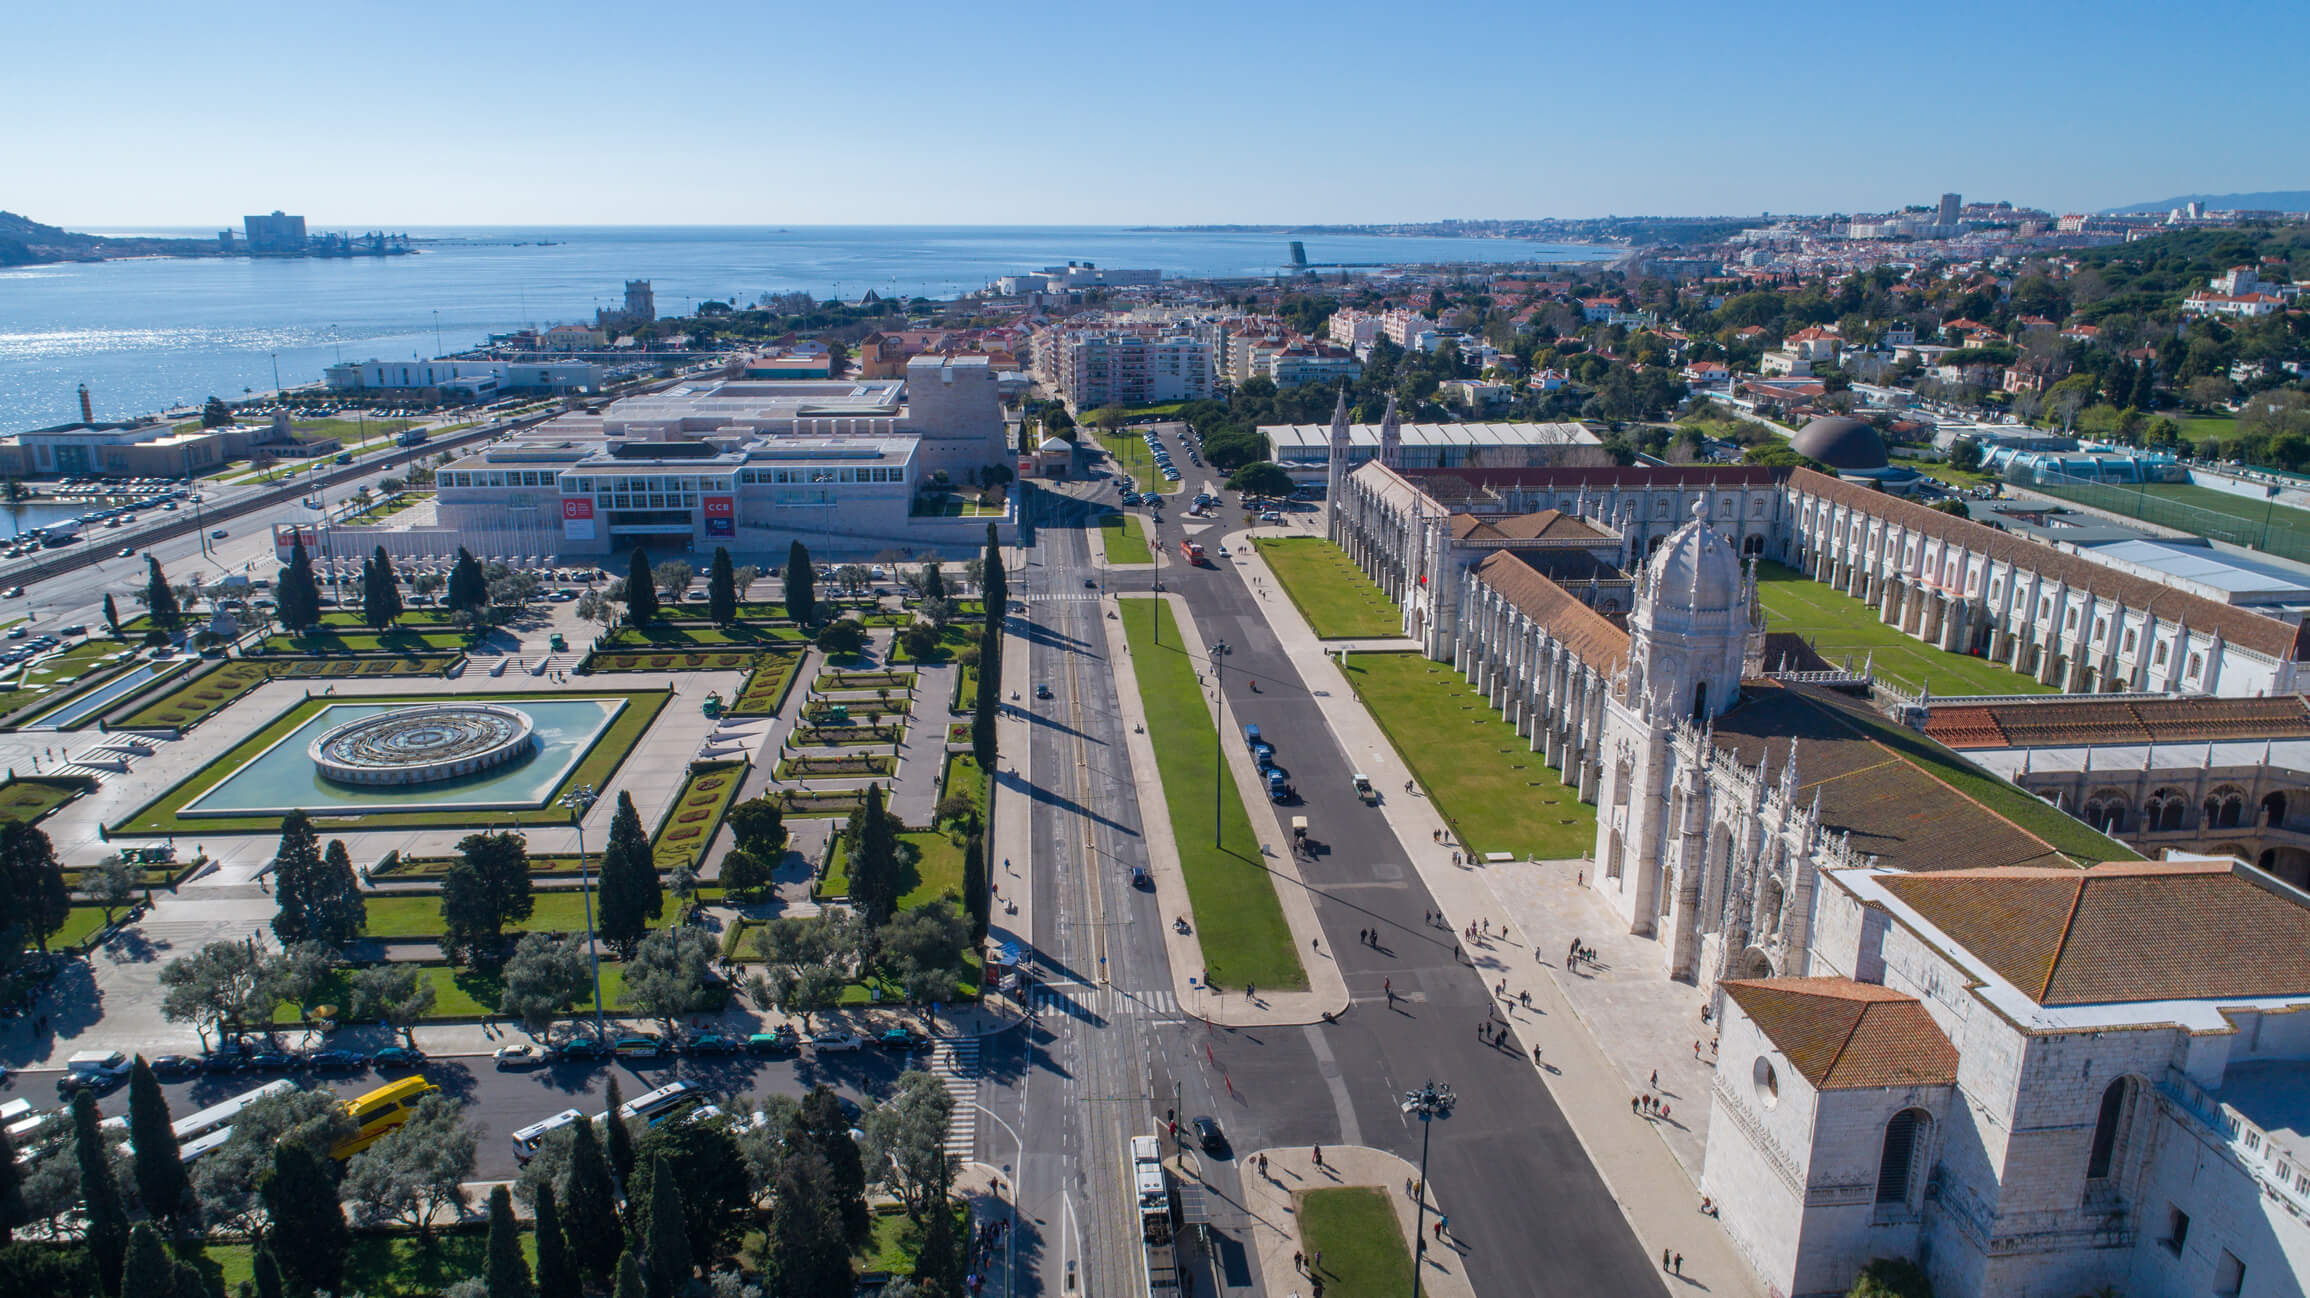 Jerónimos Monastery, museum, church and gardens - what to see in Lisbon